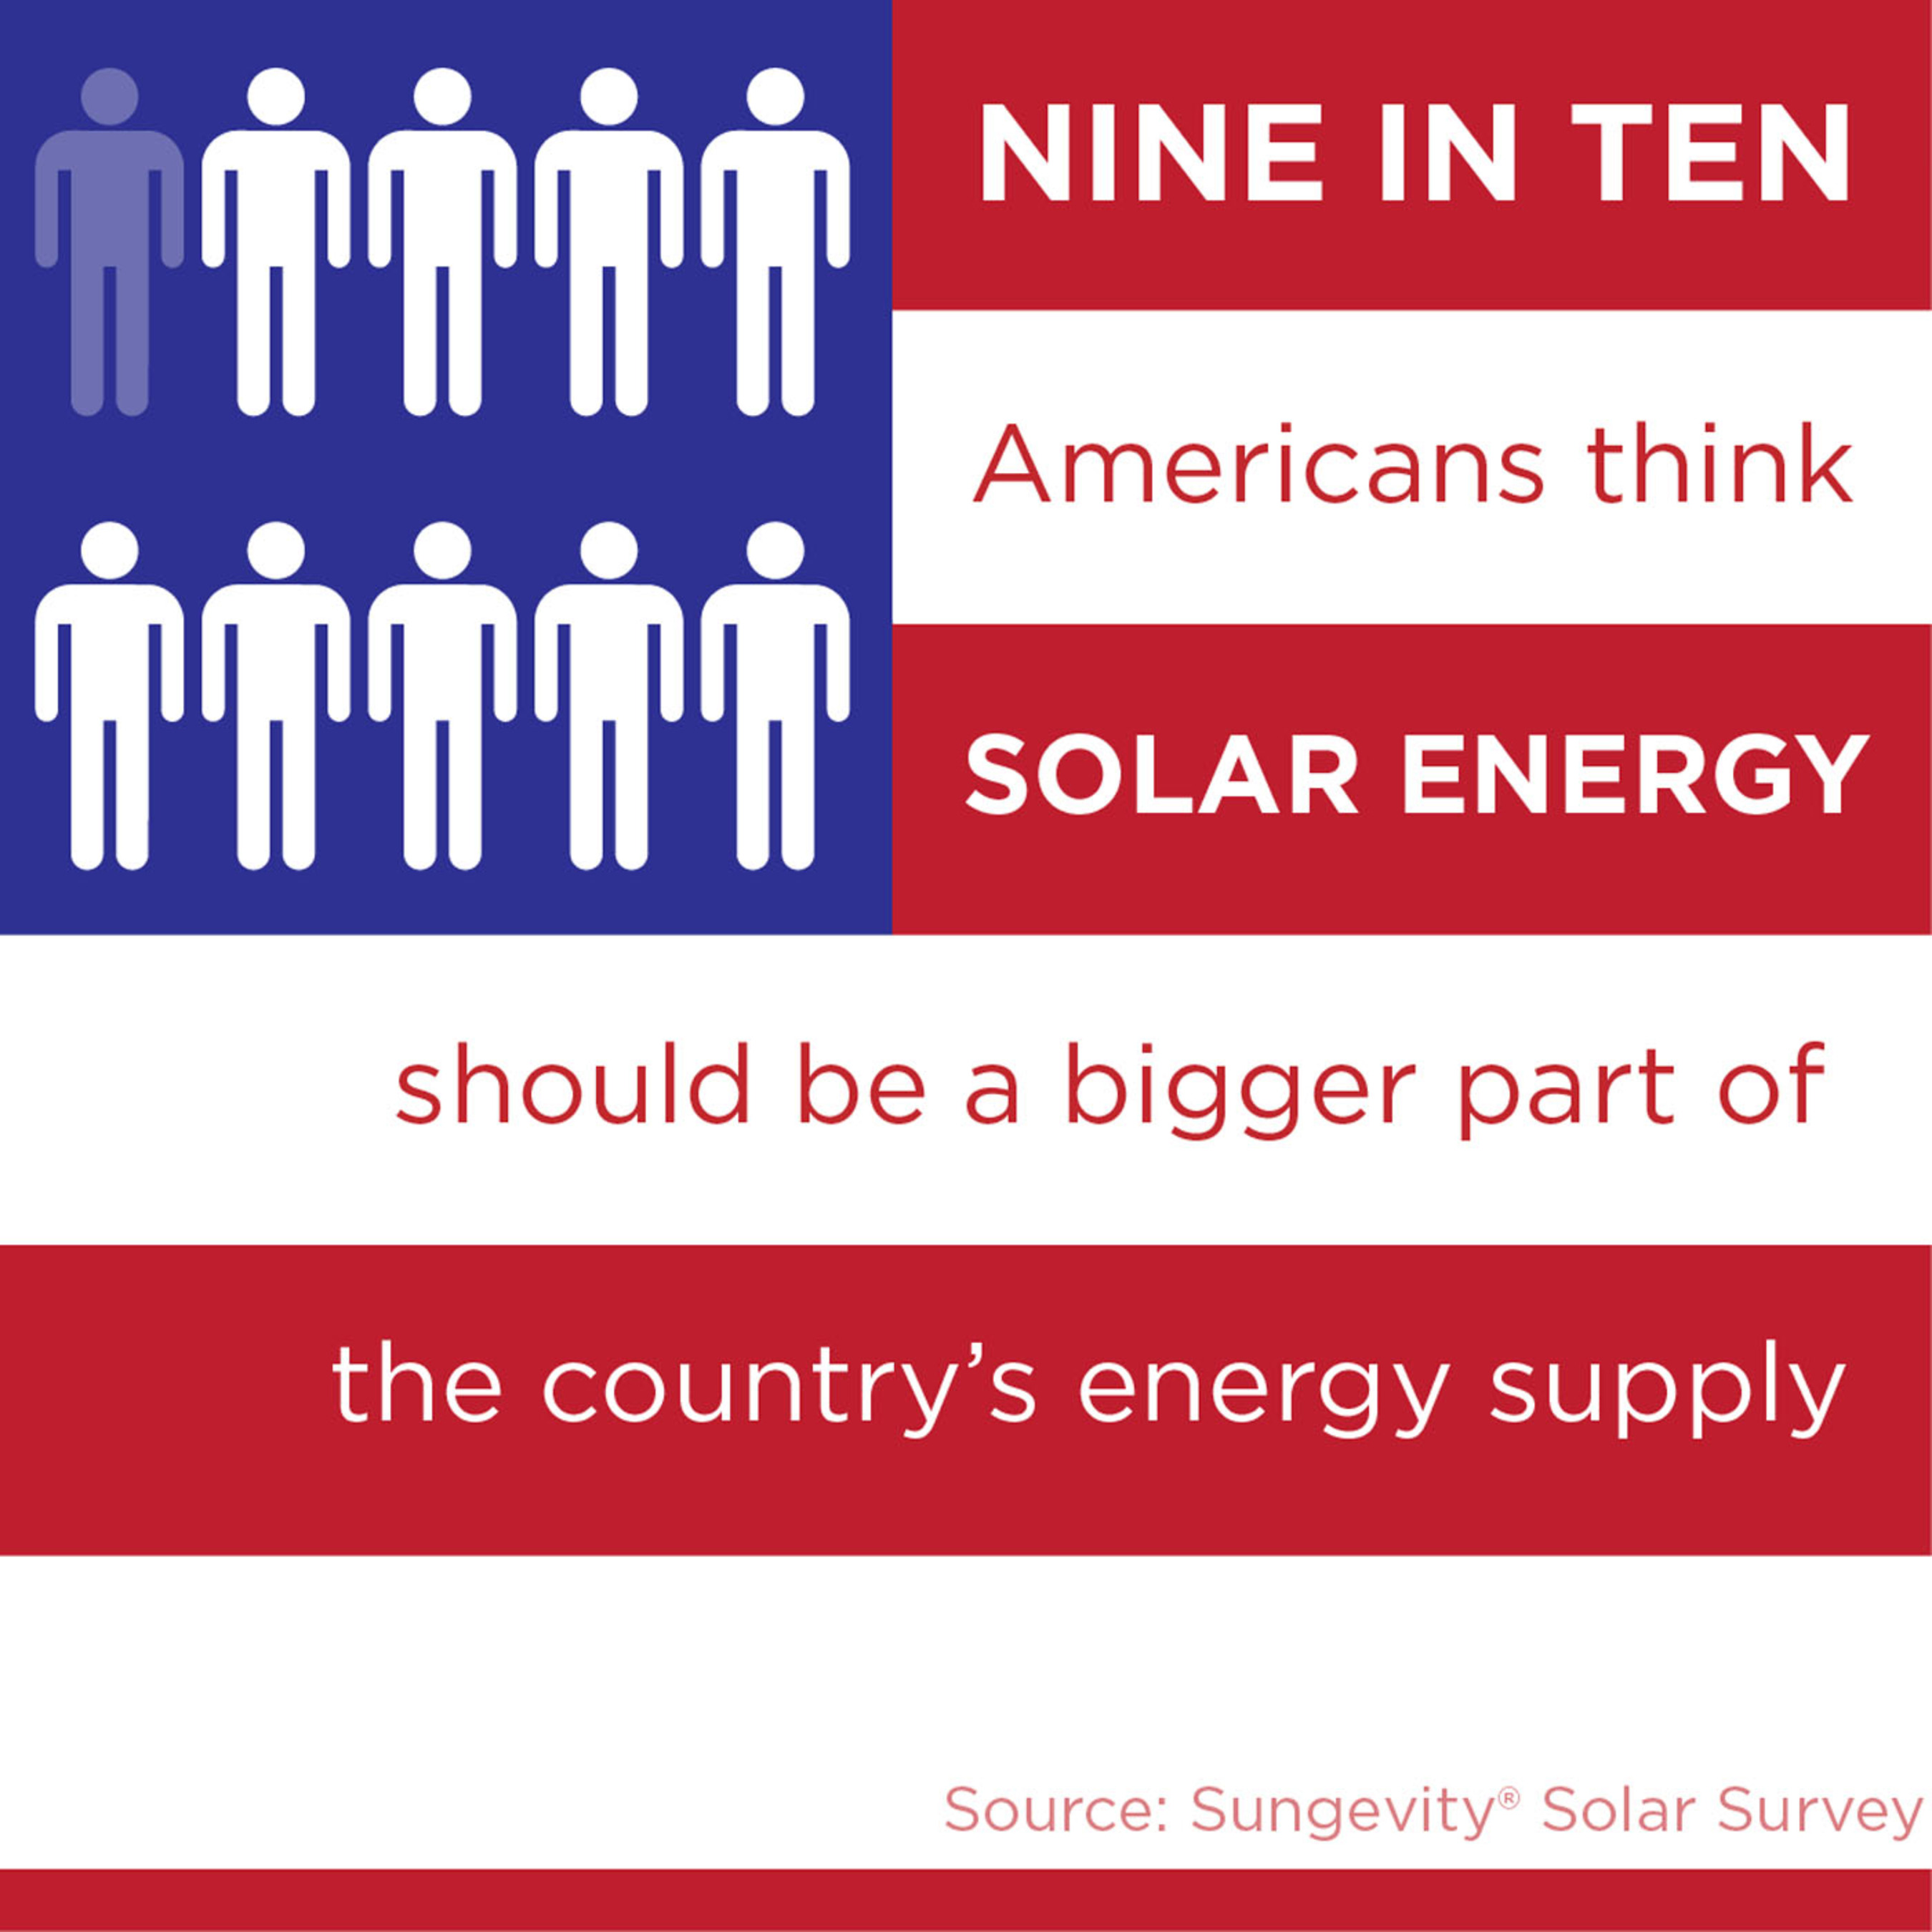 Nine in Ten Americans Think Solar Should Be a Bigger Part of the Country's Energy Supply